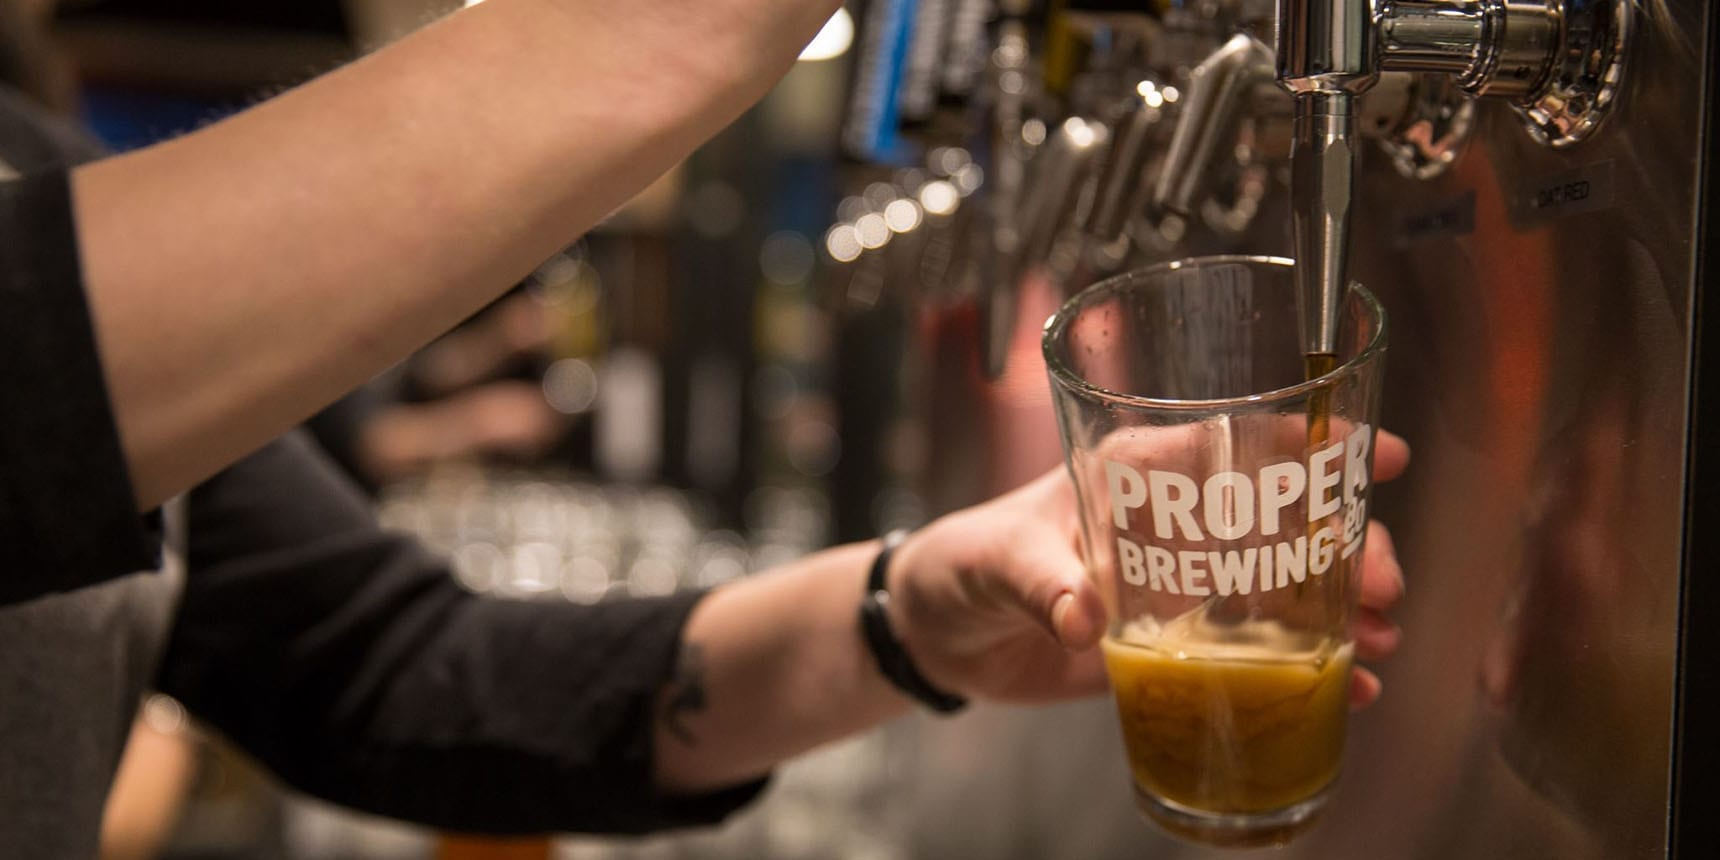 Avenues Proper opened in 2013 to become, at the time, Utah's smallest commercial brewery. Since then, Proper Brewing Co. has expanded to feature five properties throughout the Salt Lake area.